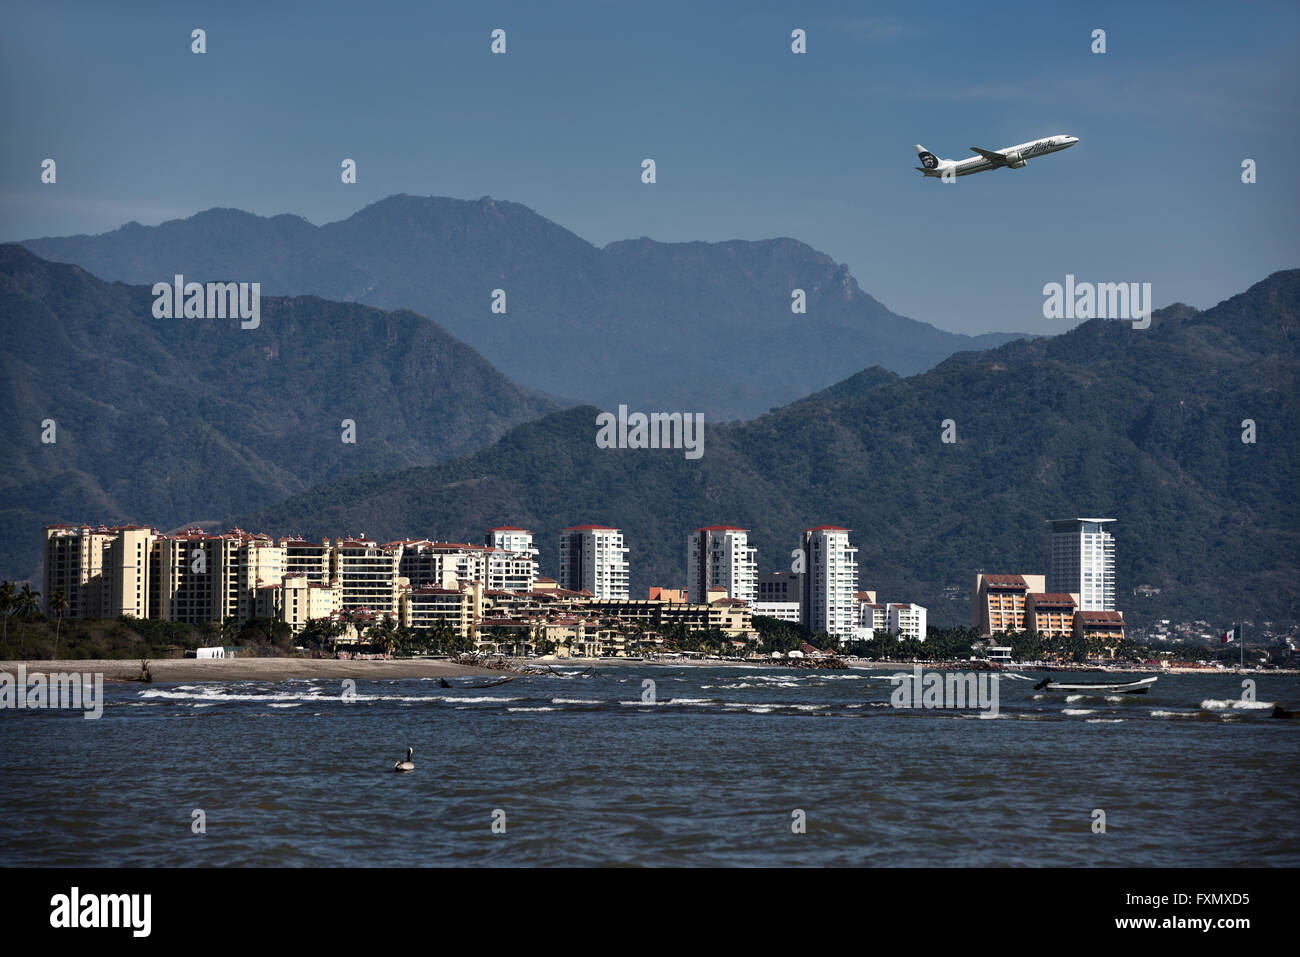 Piano di getto di decollare da Puerto Vallarta aeroporto con oceano Pacifico e Sierra Madre mountains Immagini Stock